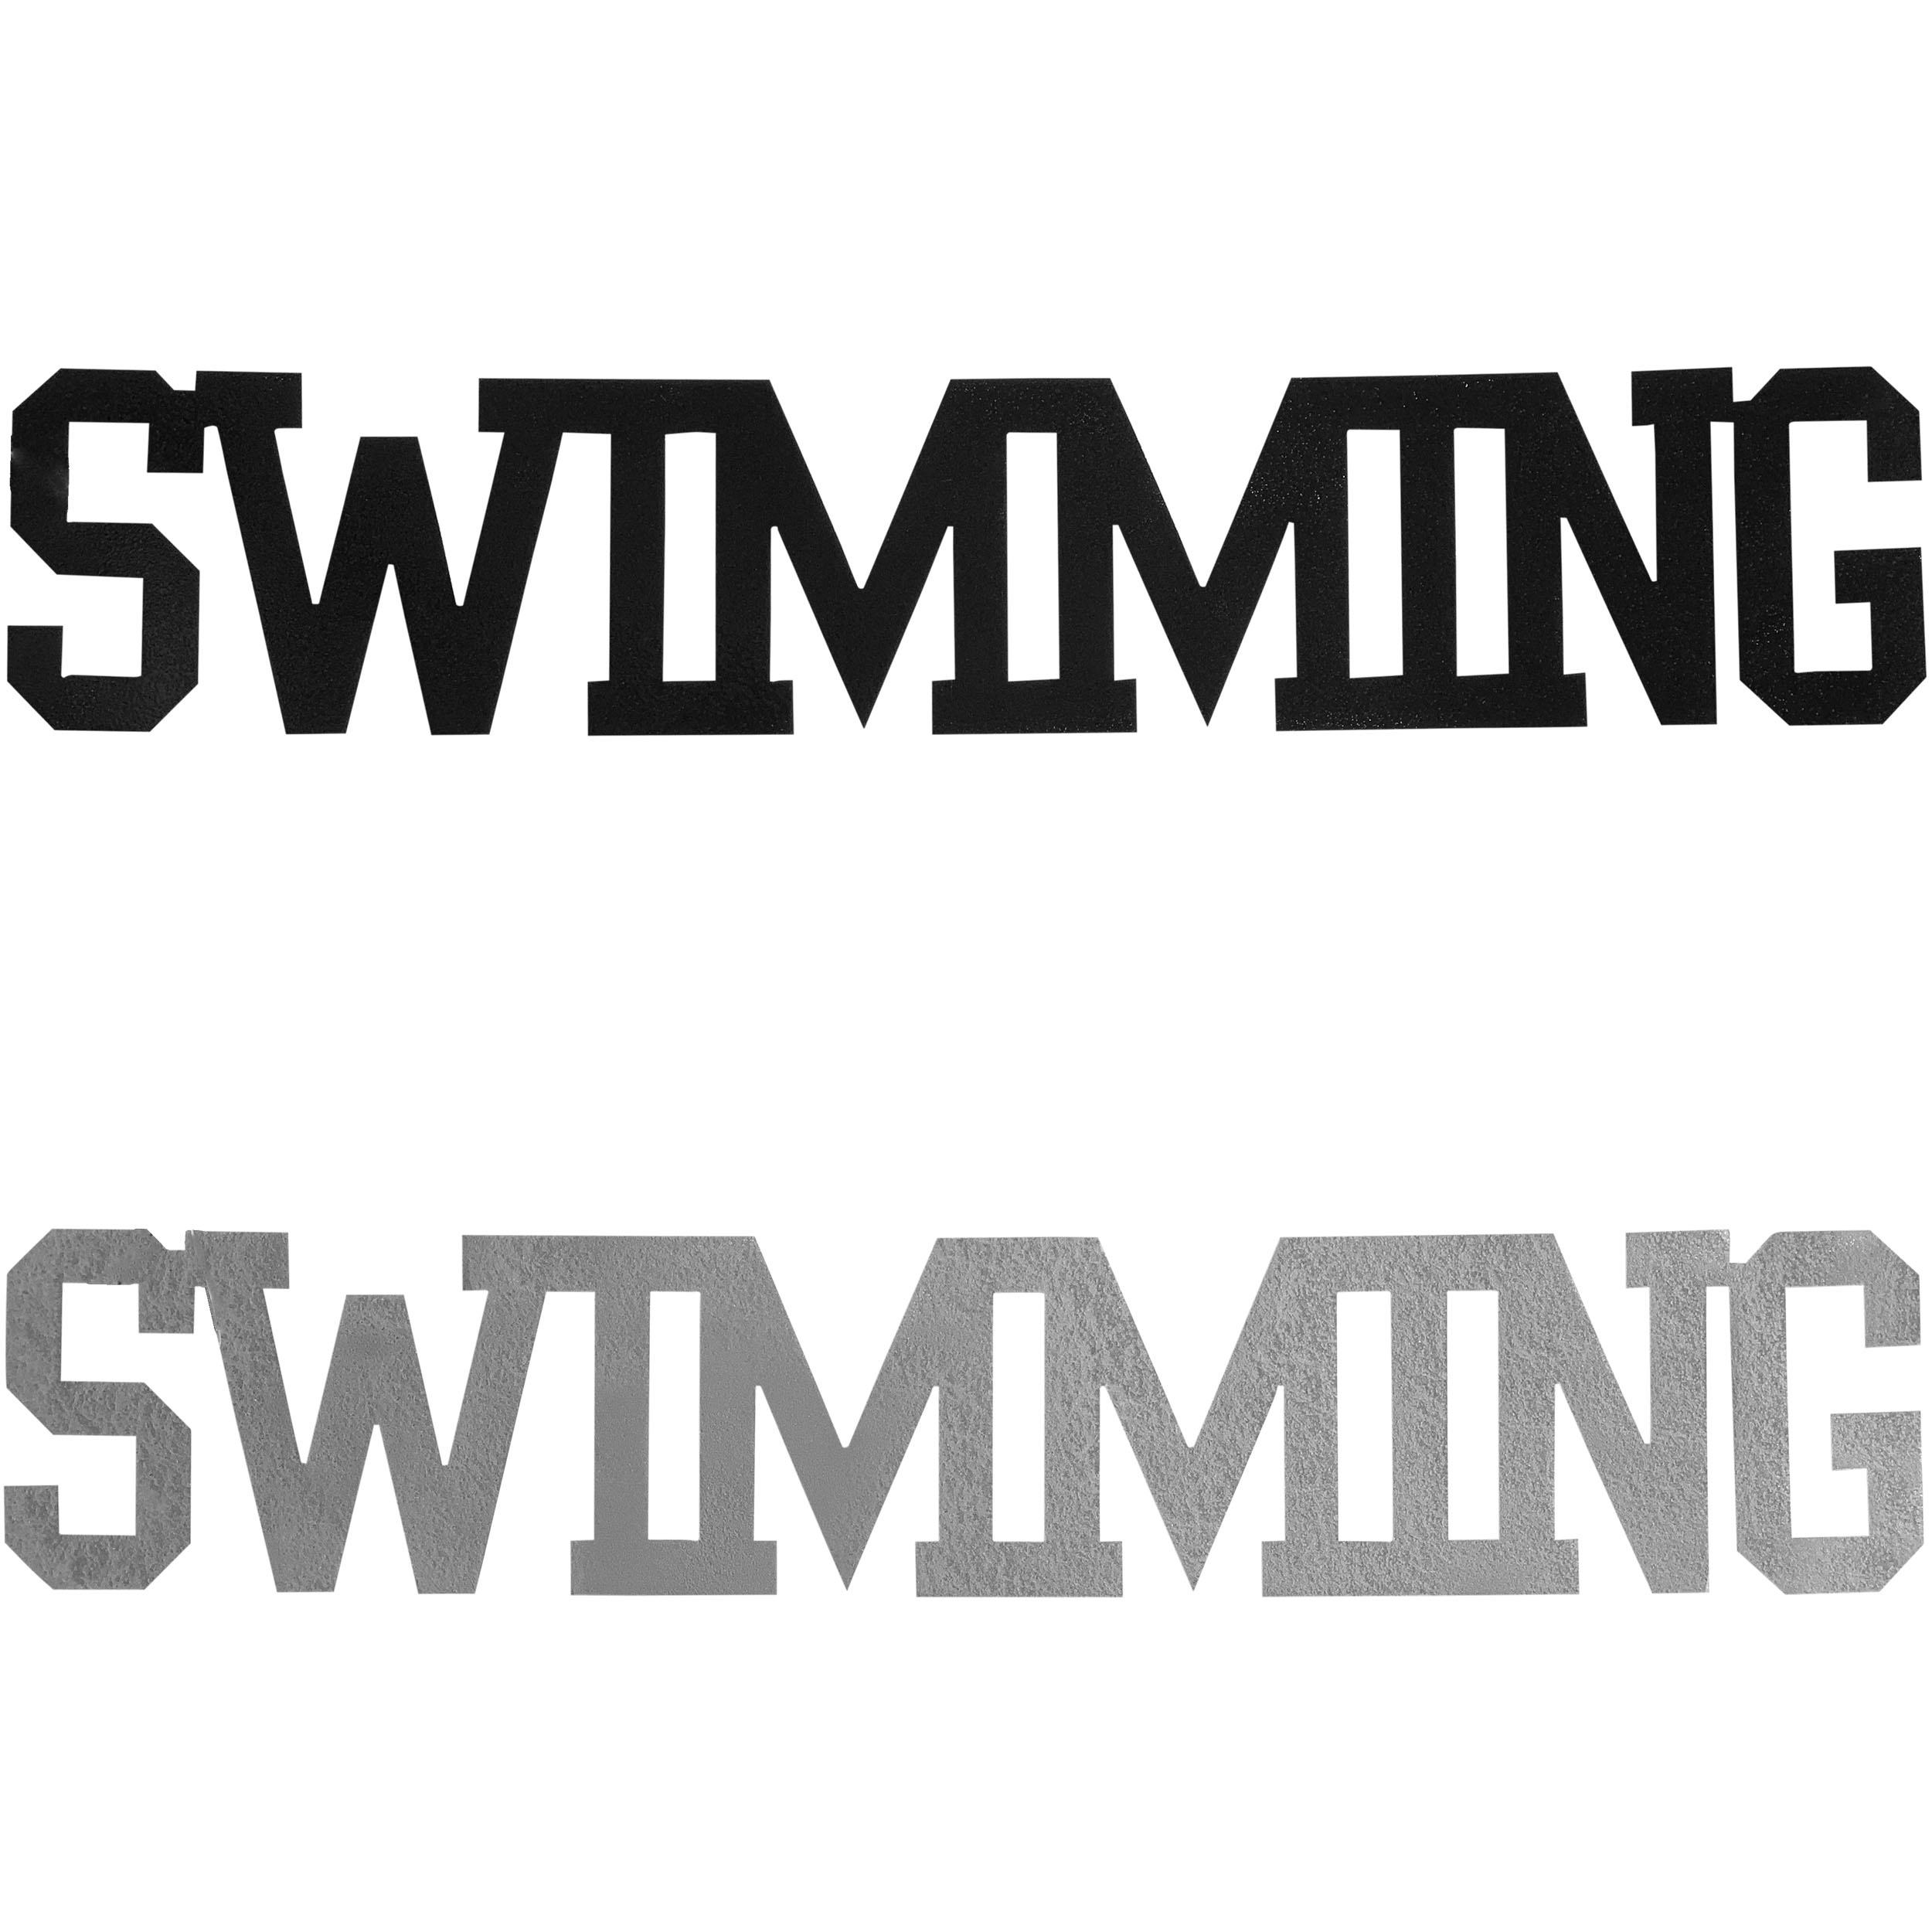 all-swimming-words